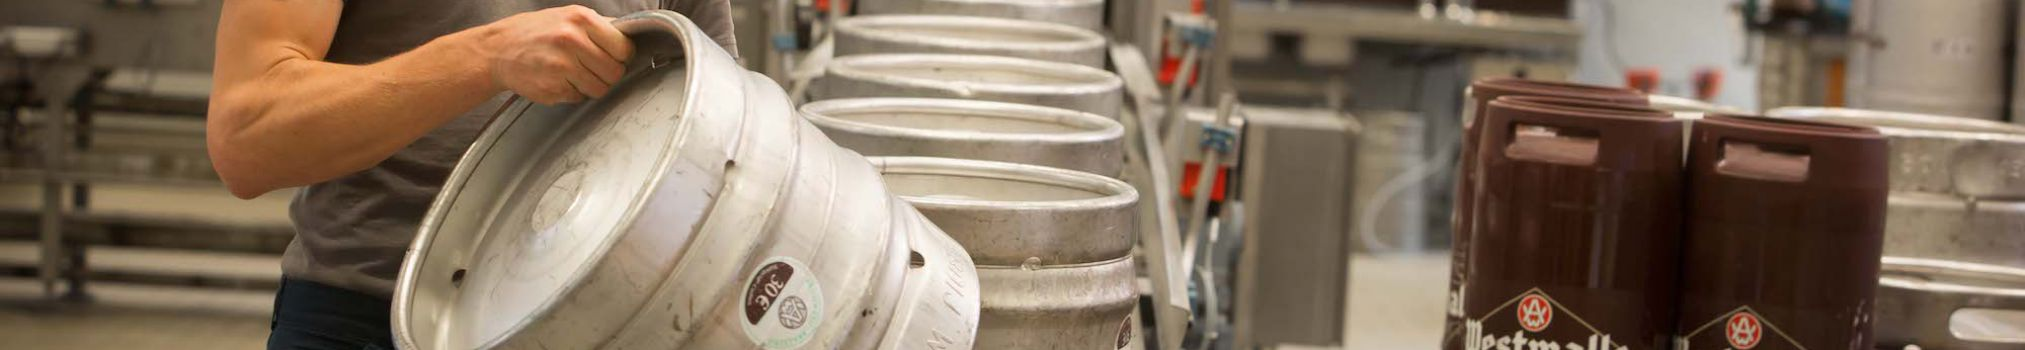 Westmalle kegs for business